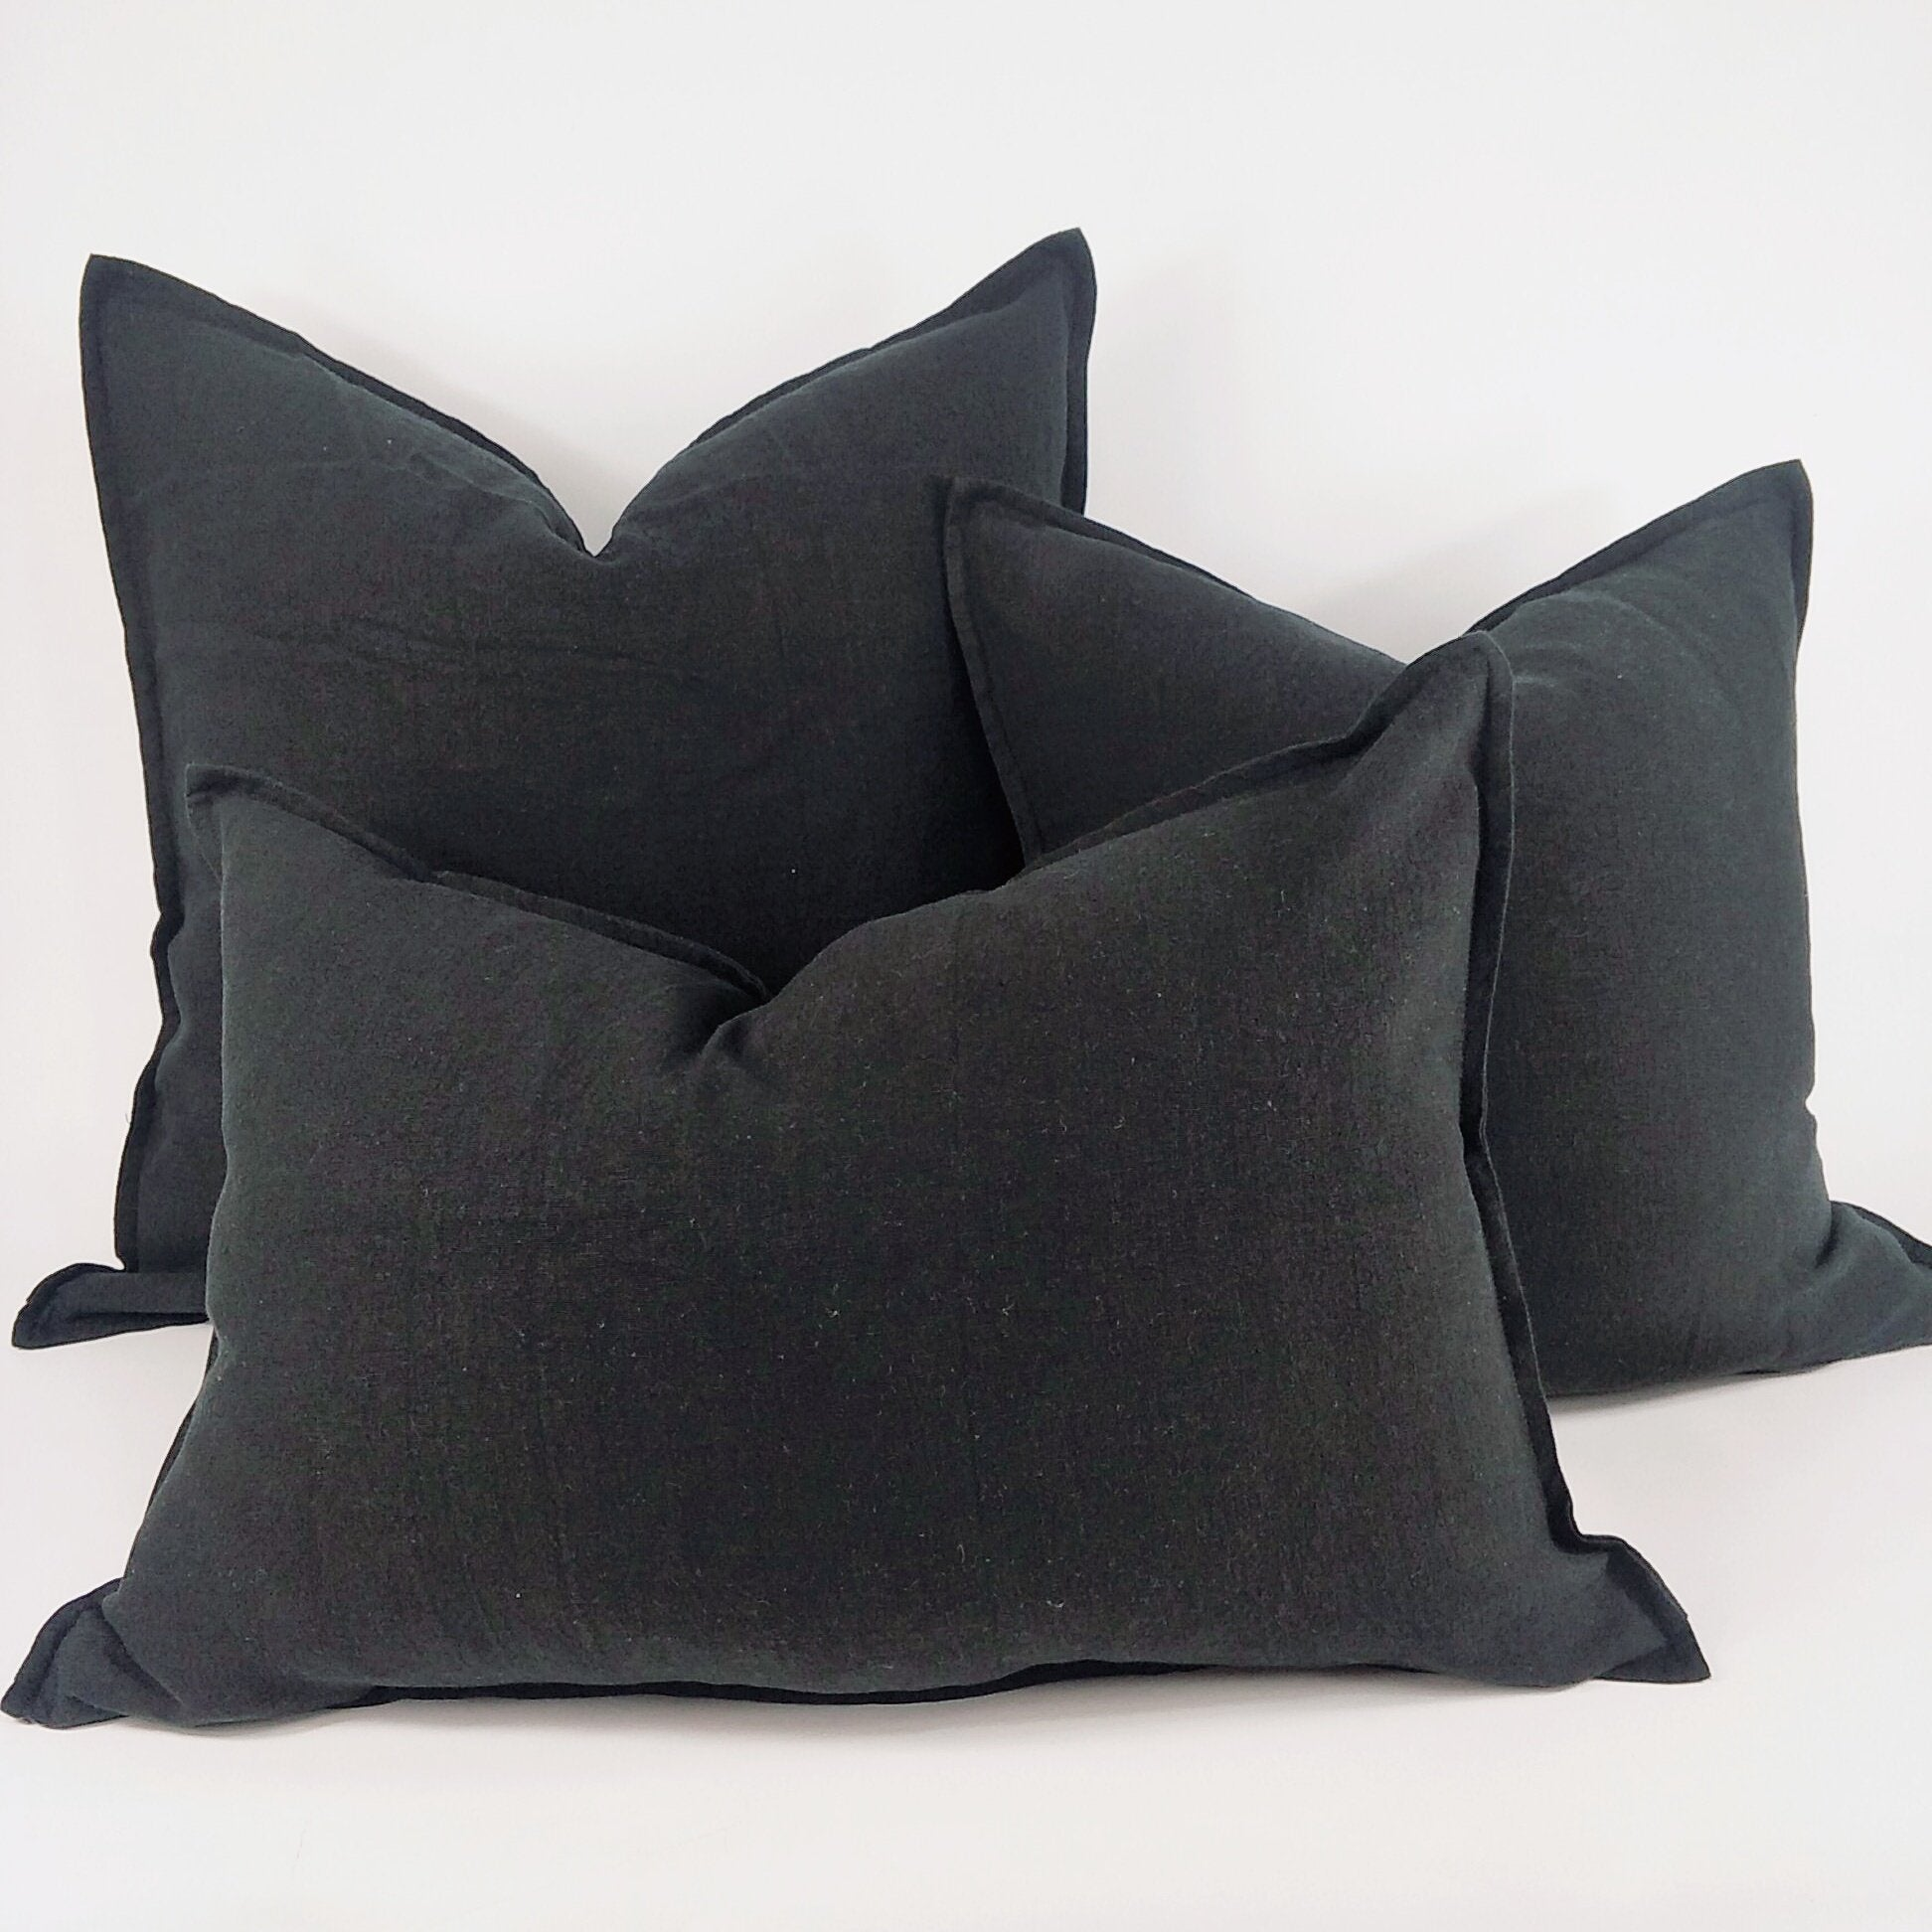 Black Swan Reims Stonewashed Linen Cushion with Feather